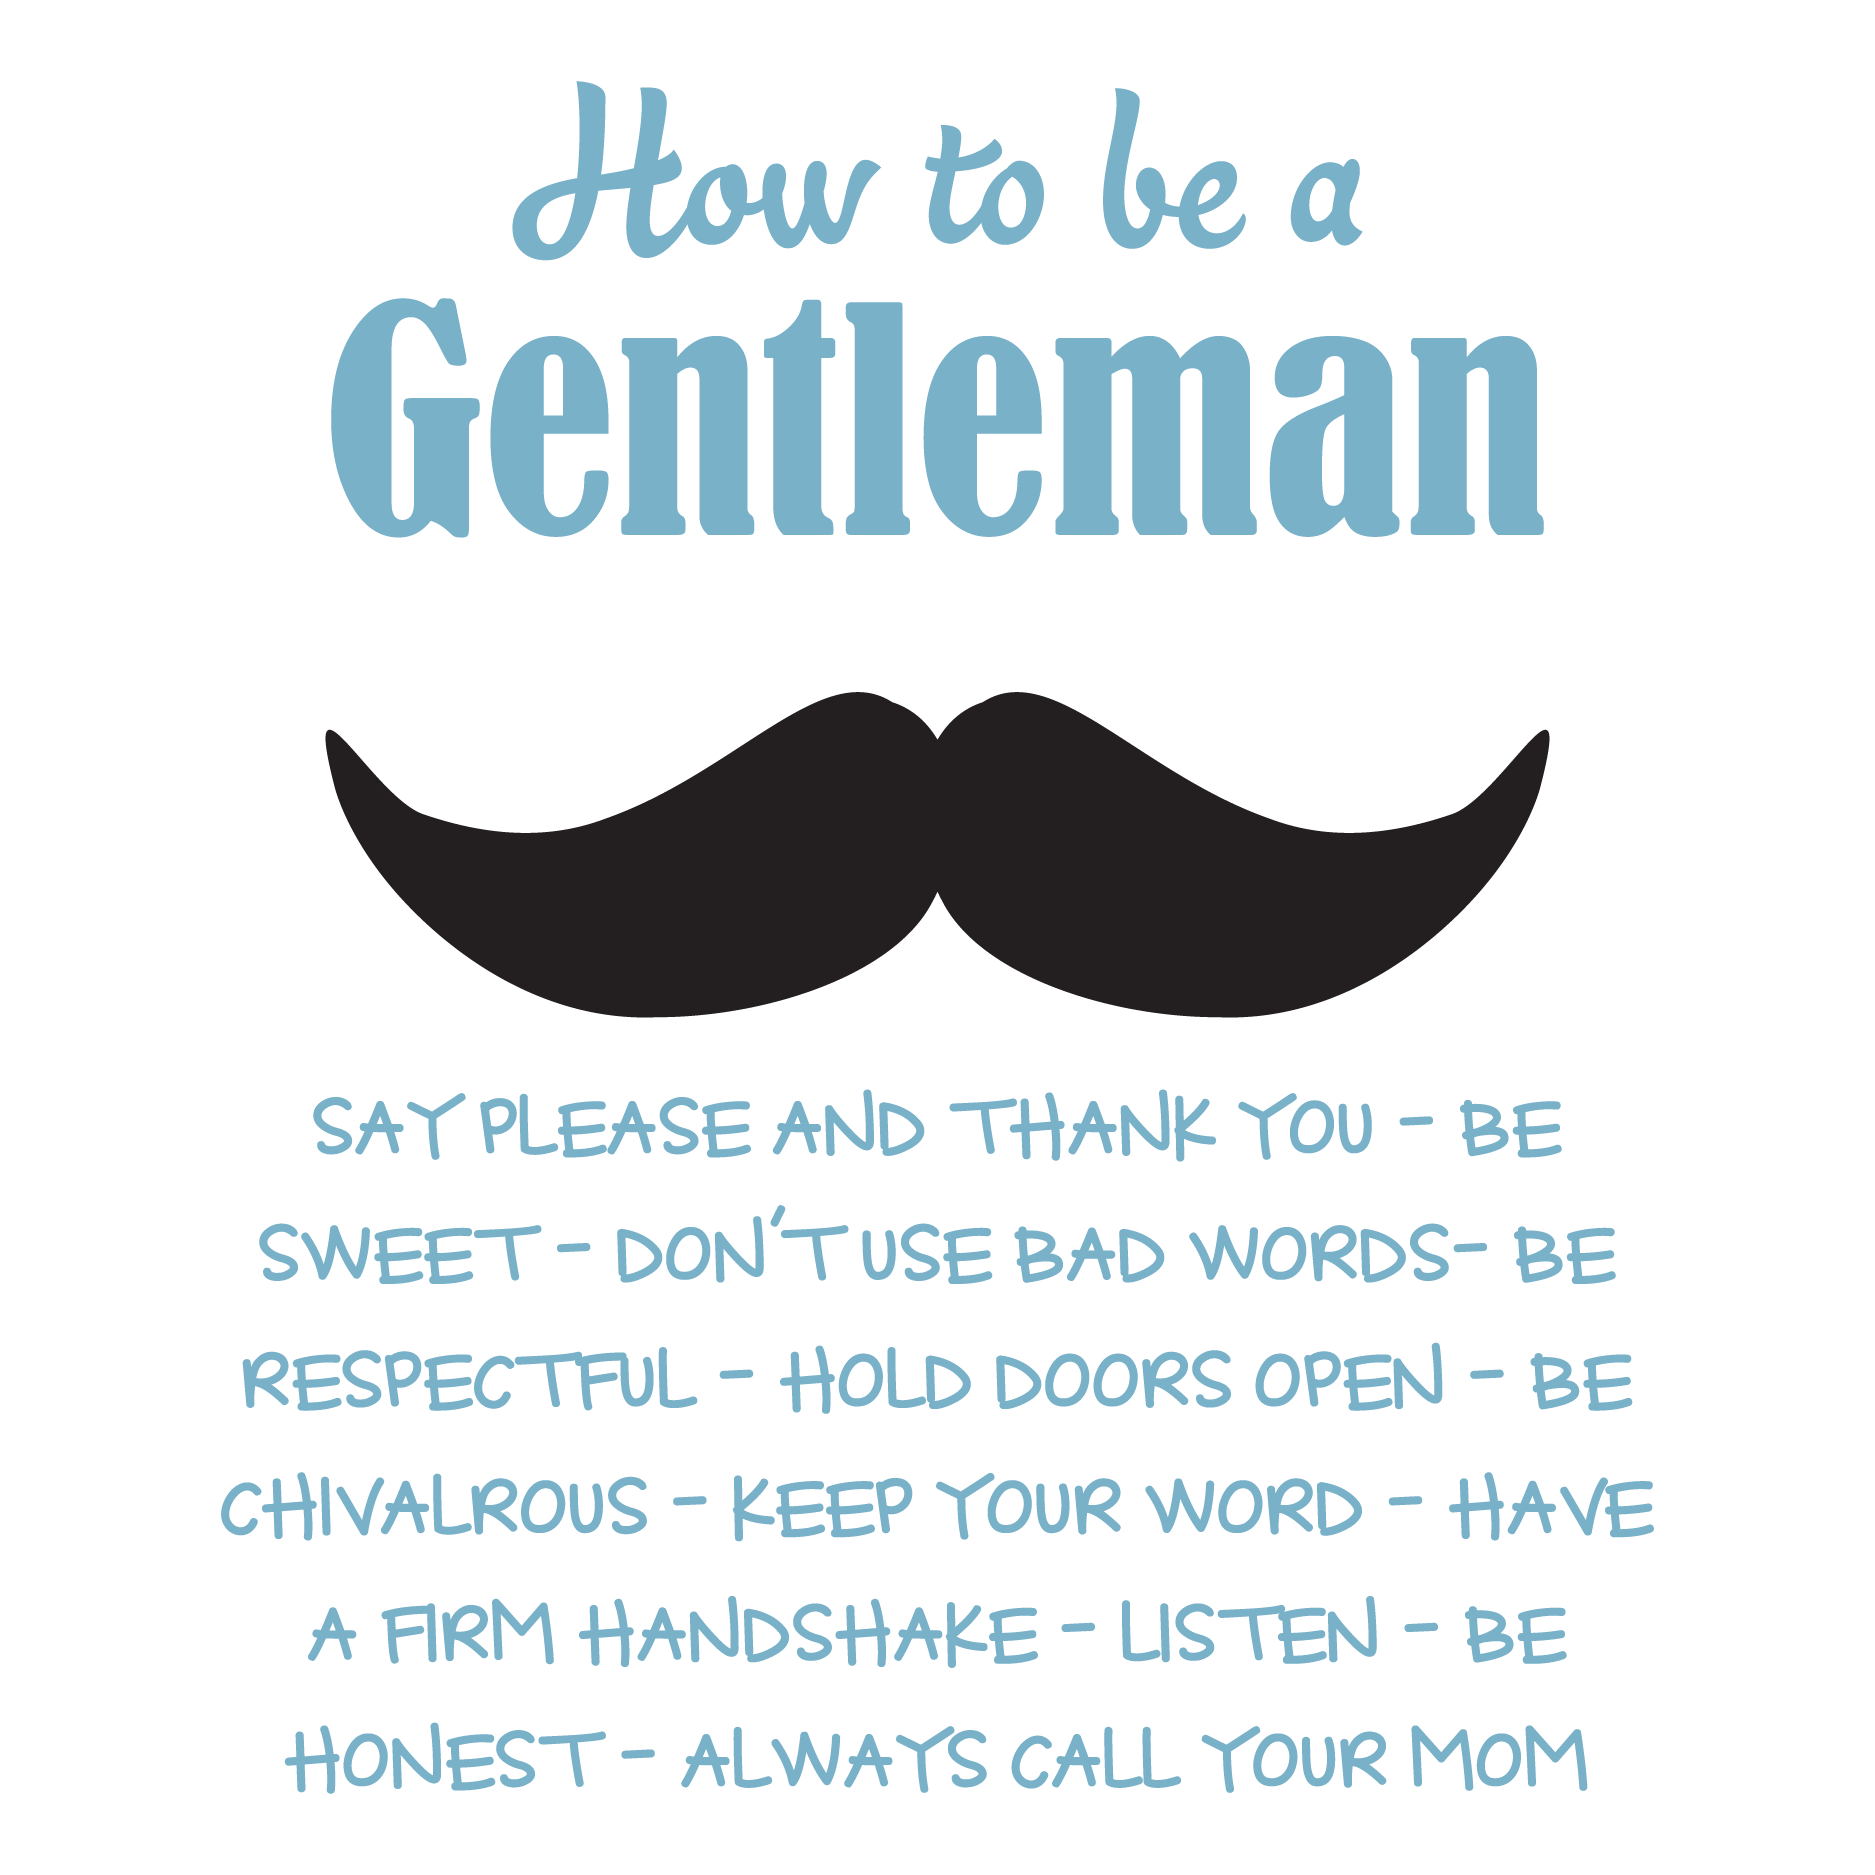 How To Be A Gentleman Rules Wall Quotes Decal